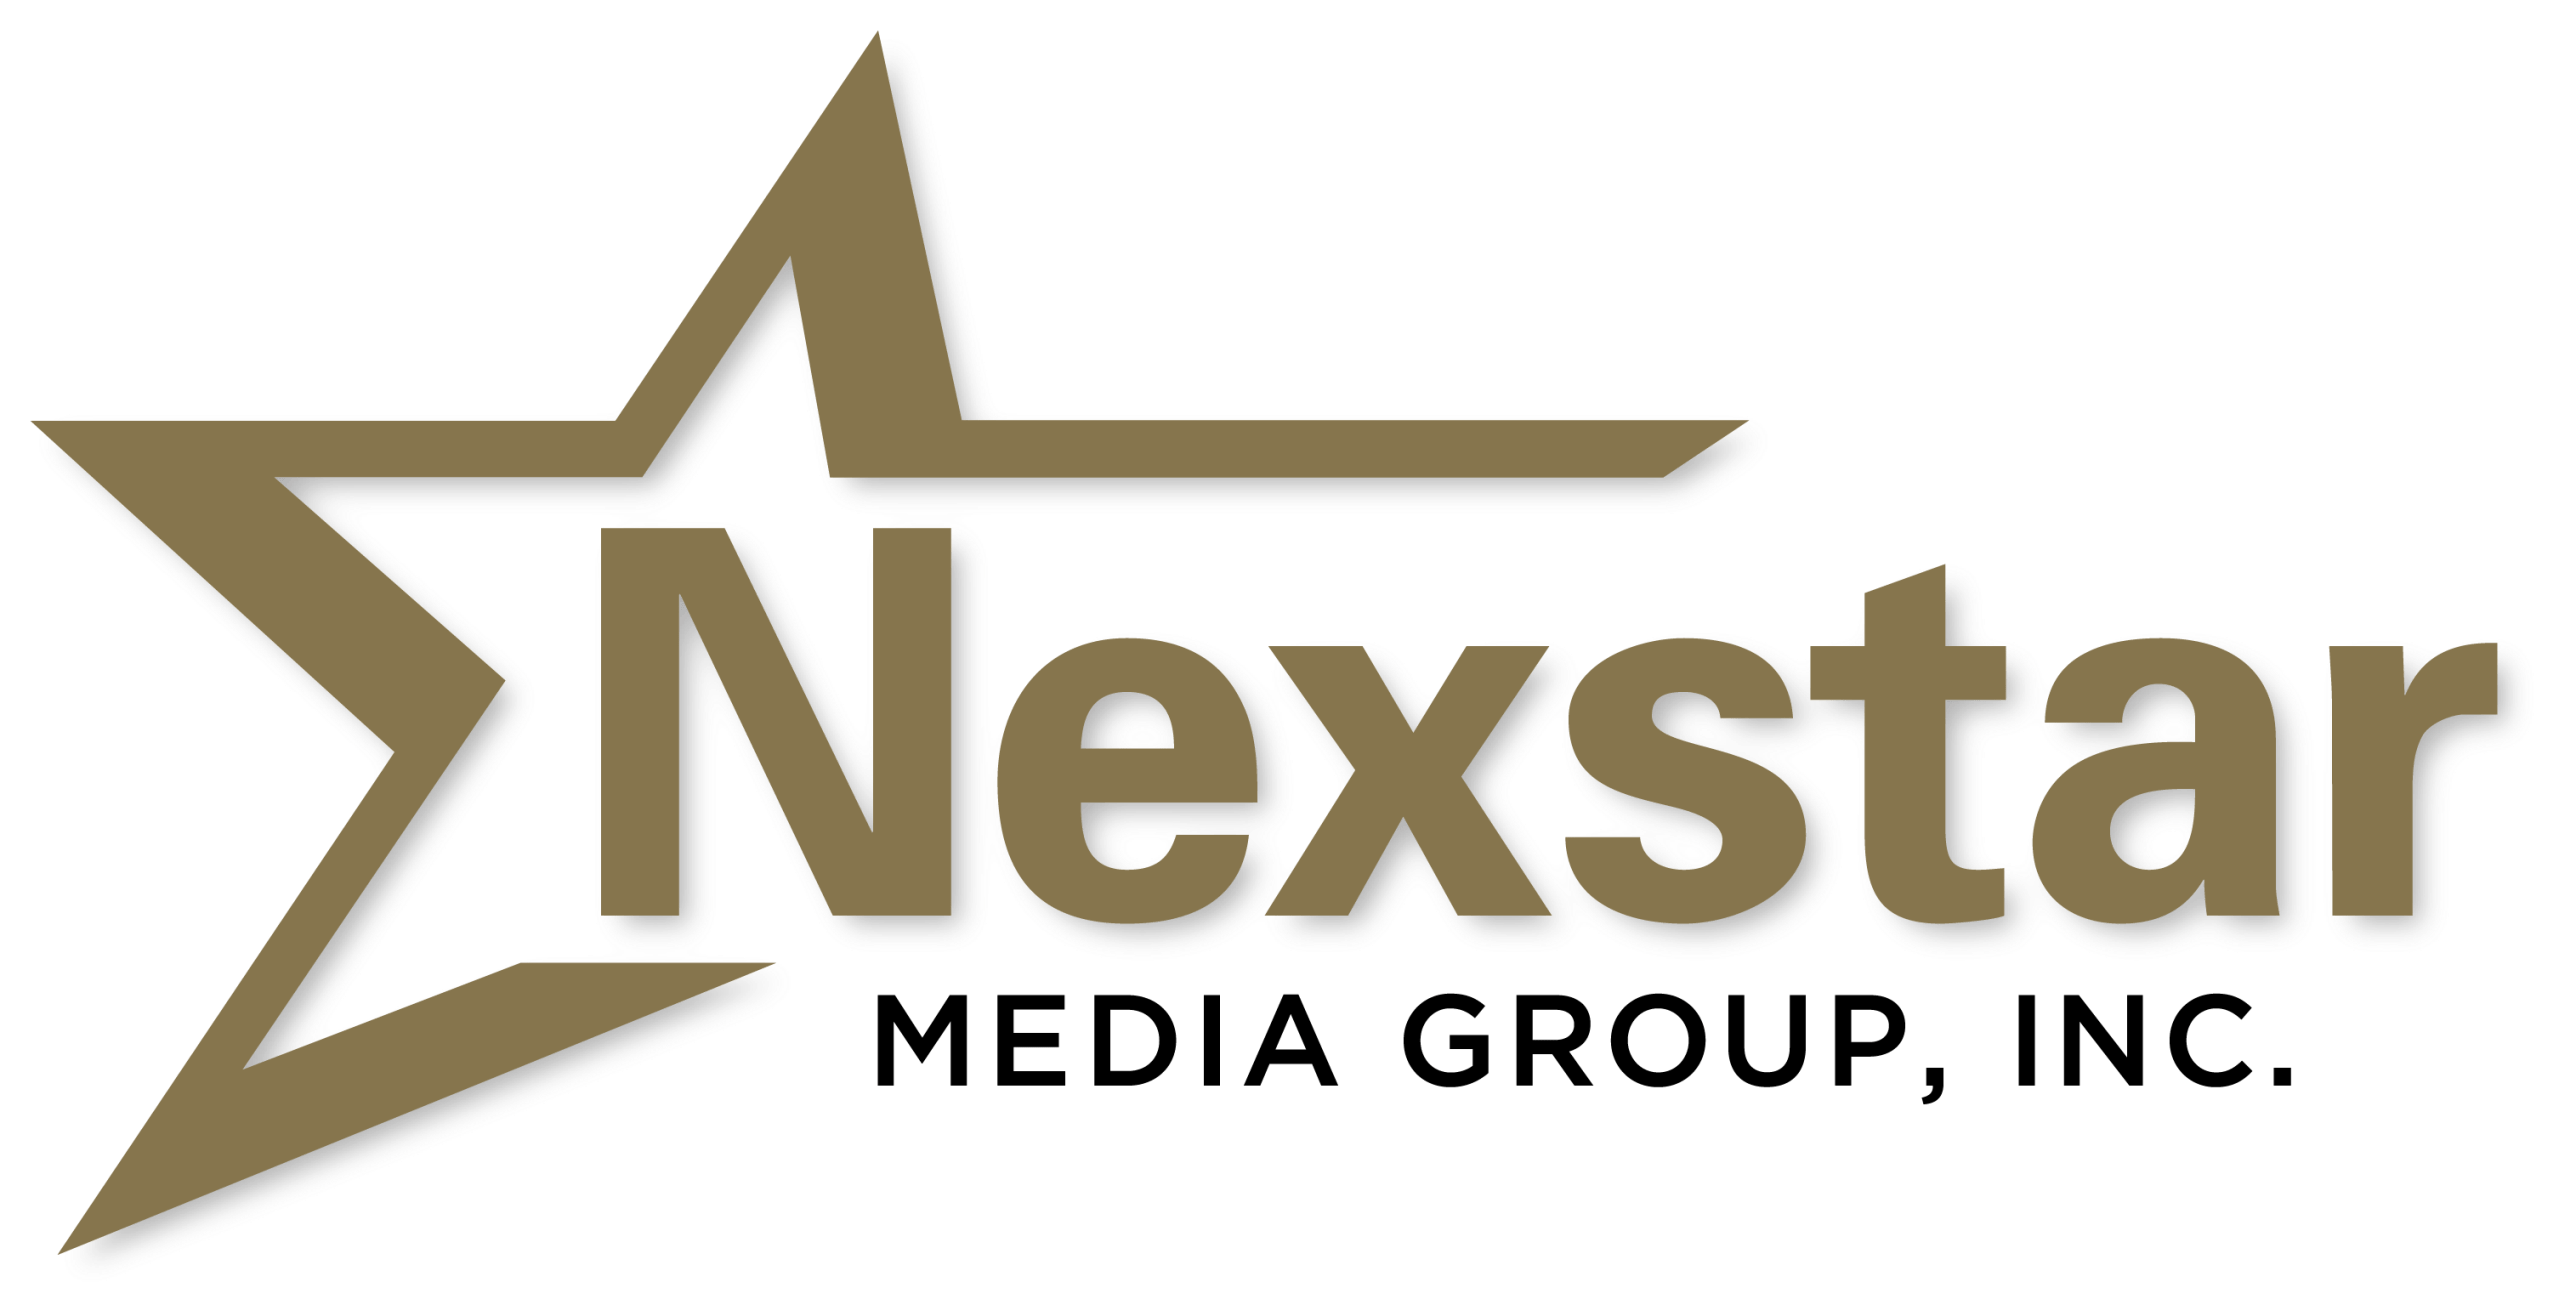 small resolution of connecticut senator blumenthal calls on directv and at t u verse to accept nexstar s extension offer to immediately restore carriage of network and local